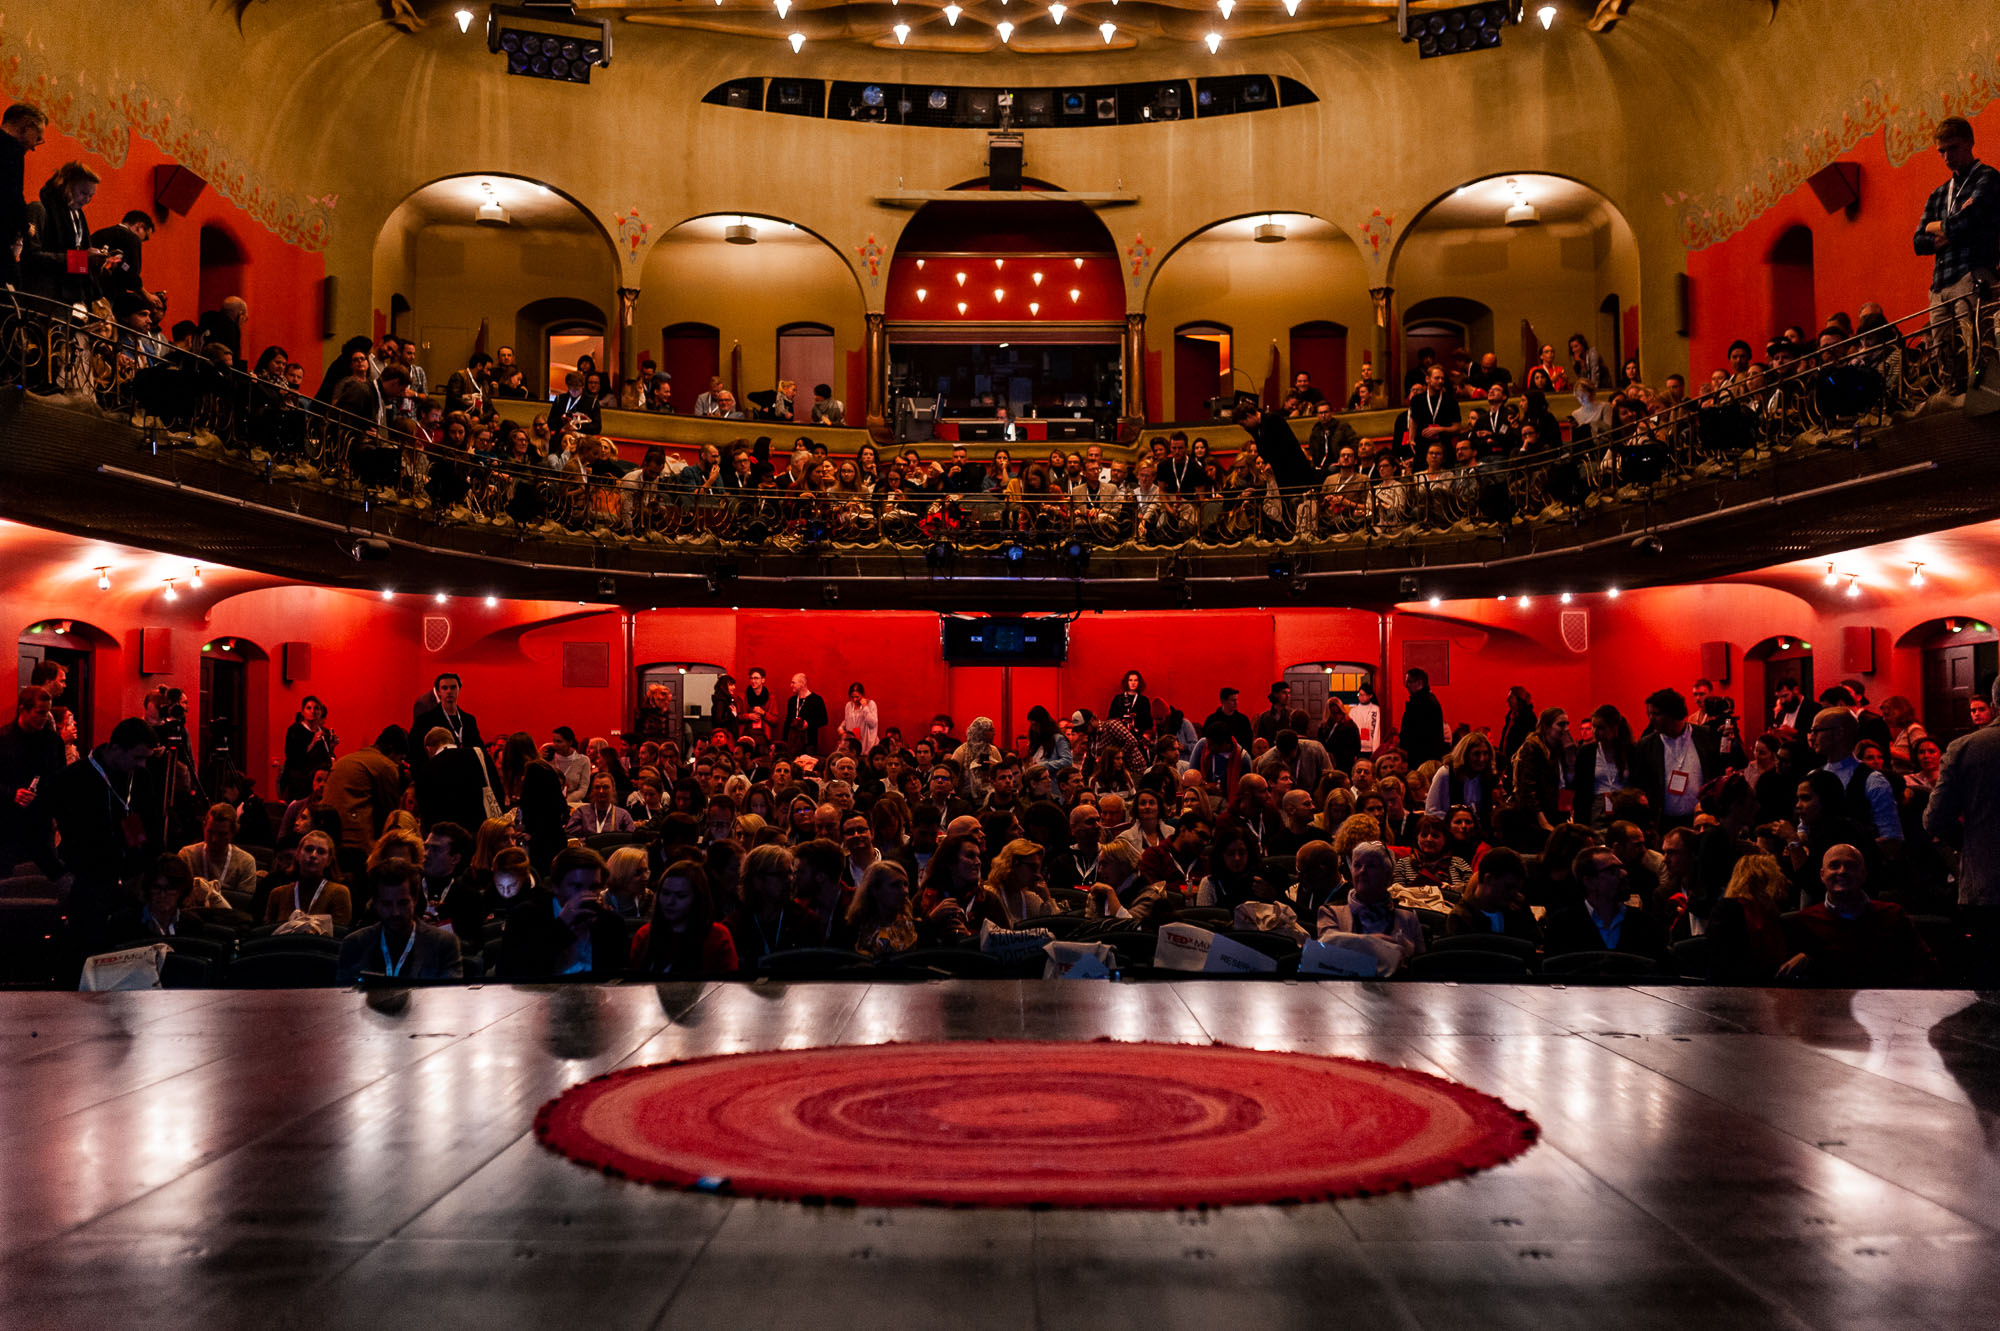 TEDx München 2018, full house at the Kammerspiele, photo by Denise Stock